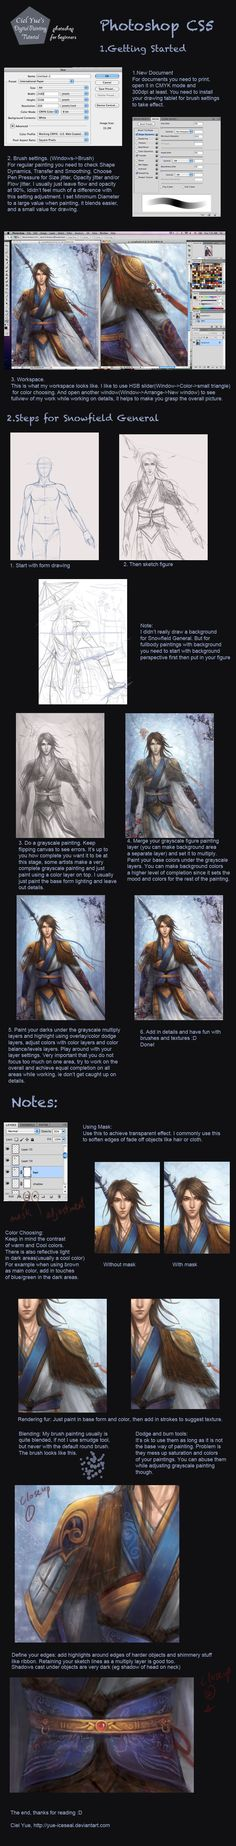 Photoshop Painting Tutorial by Yue-Iceseal.deviantart.com on @DeviantArt